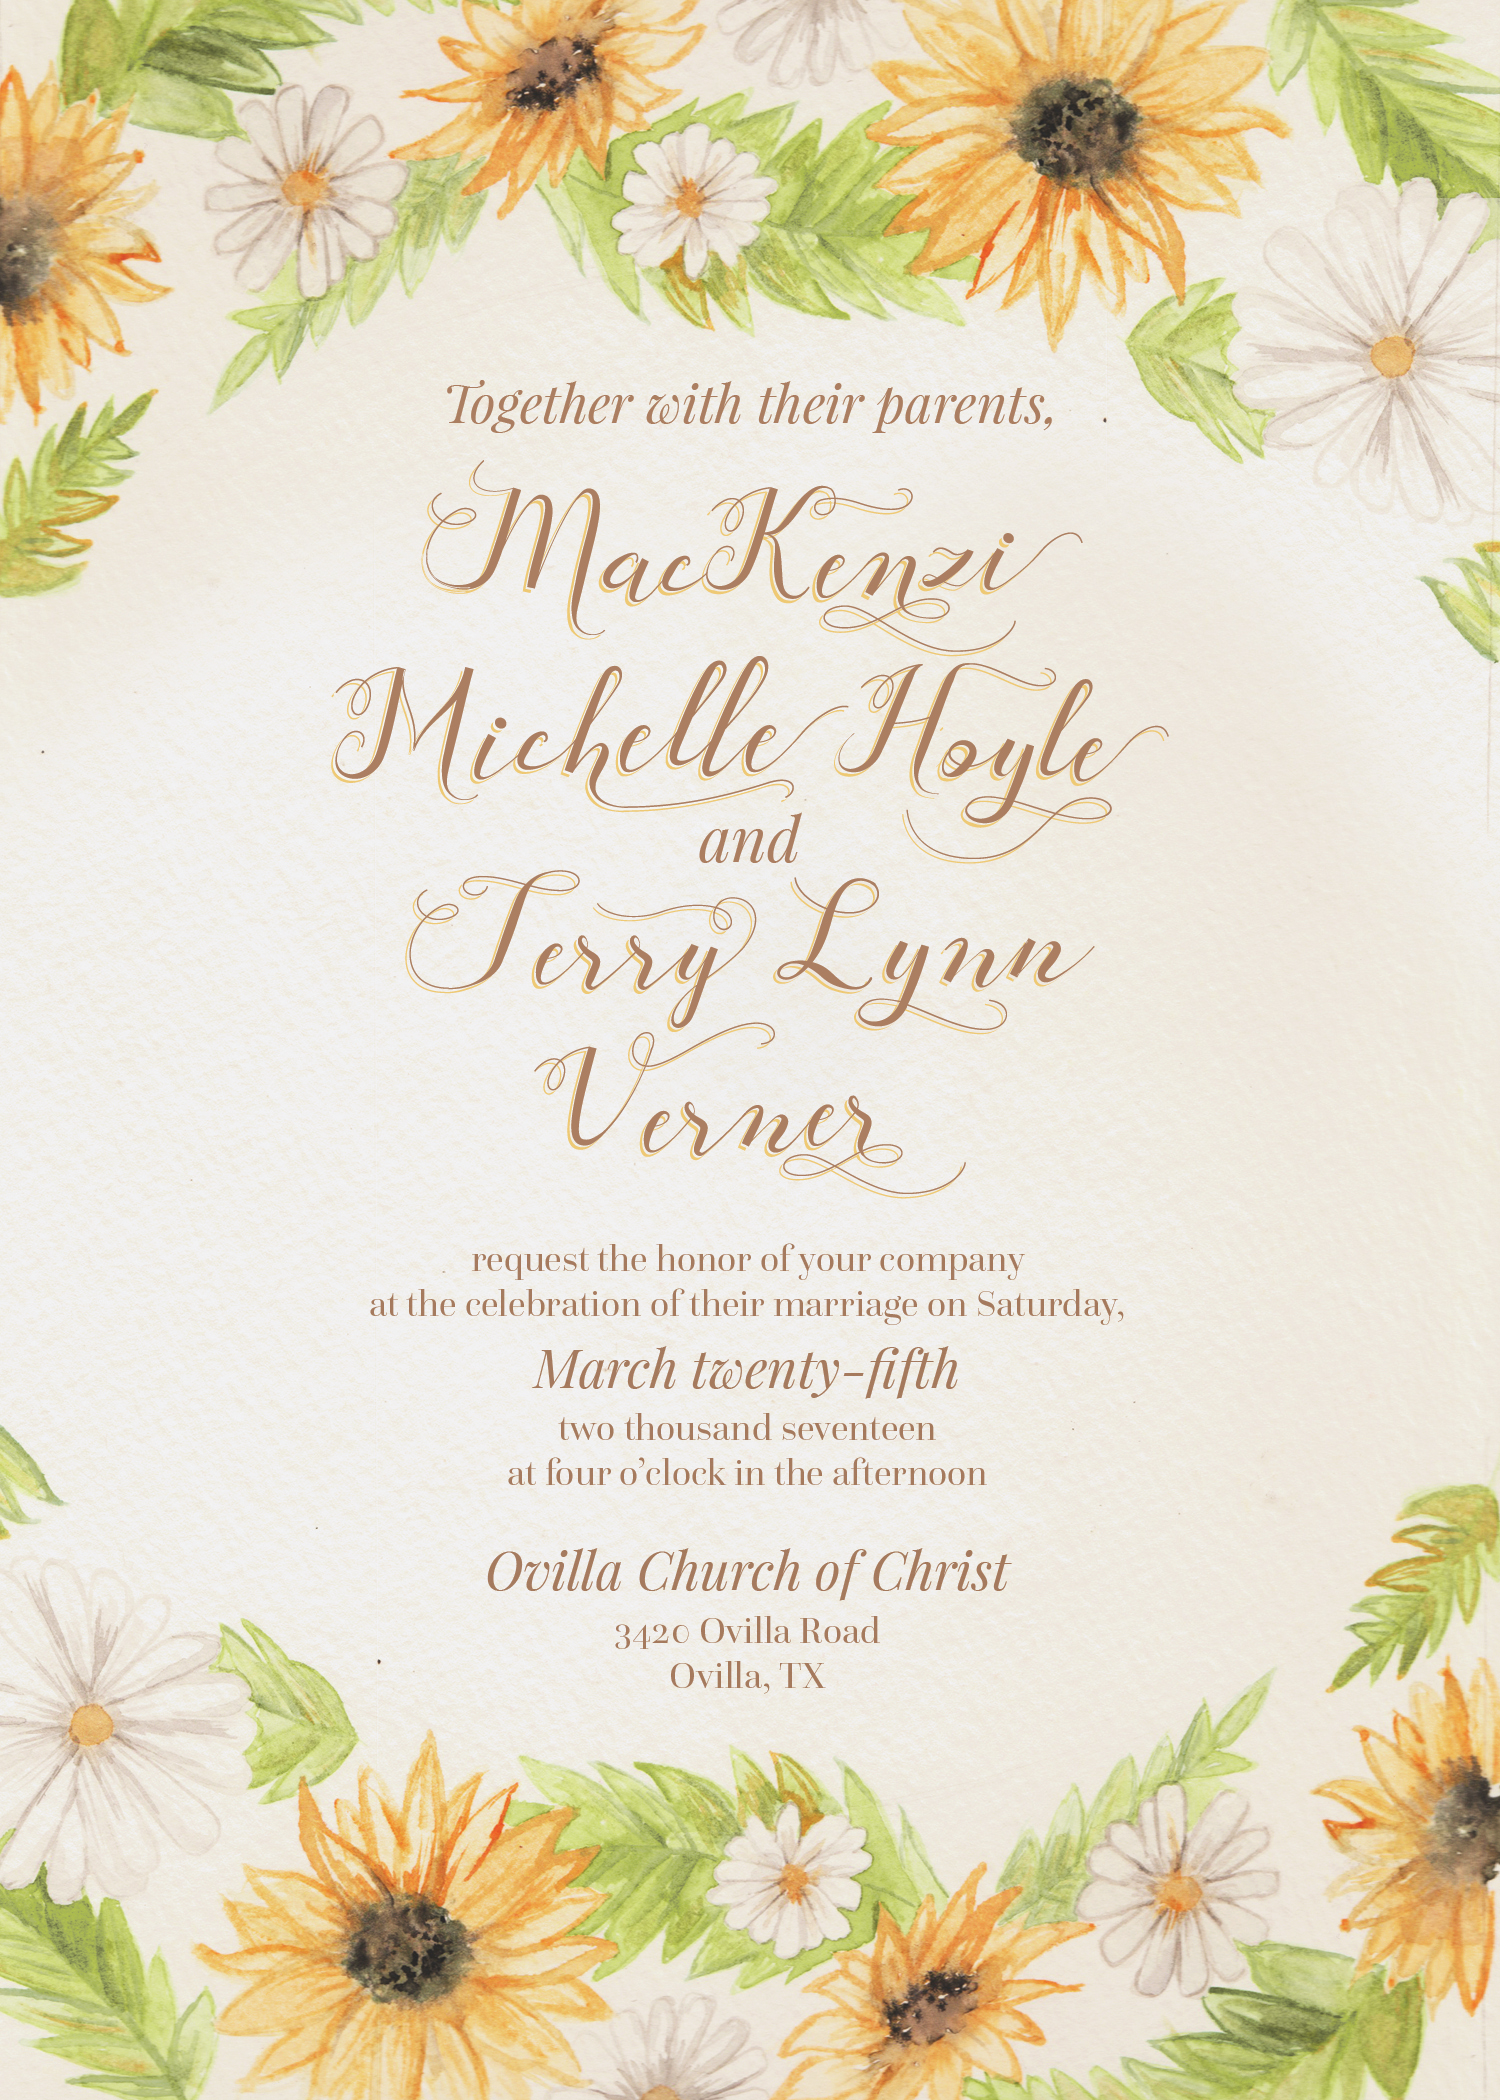 Events and Wedding Invitations